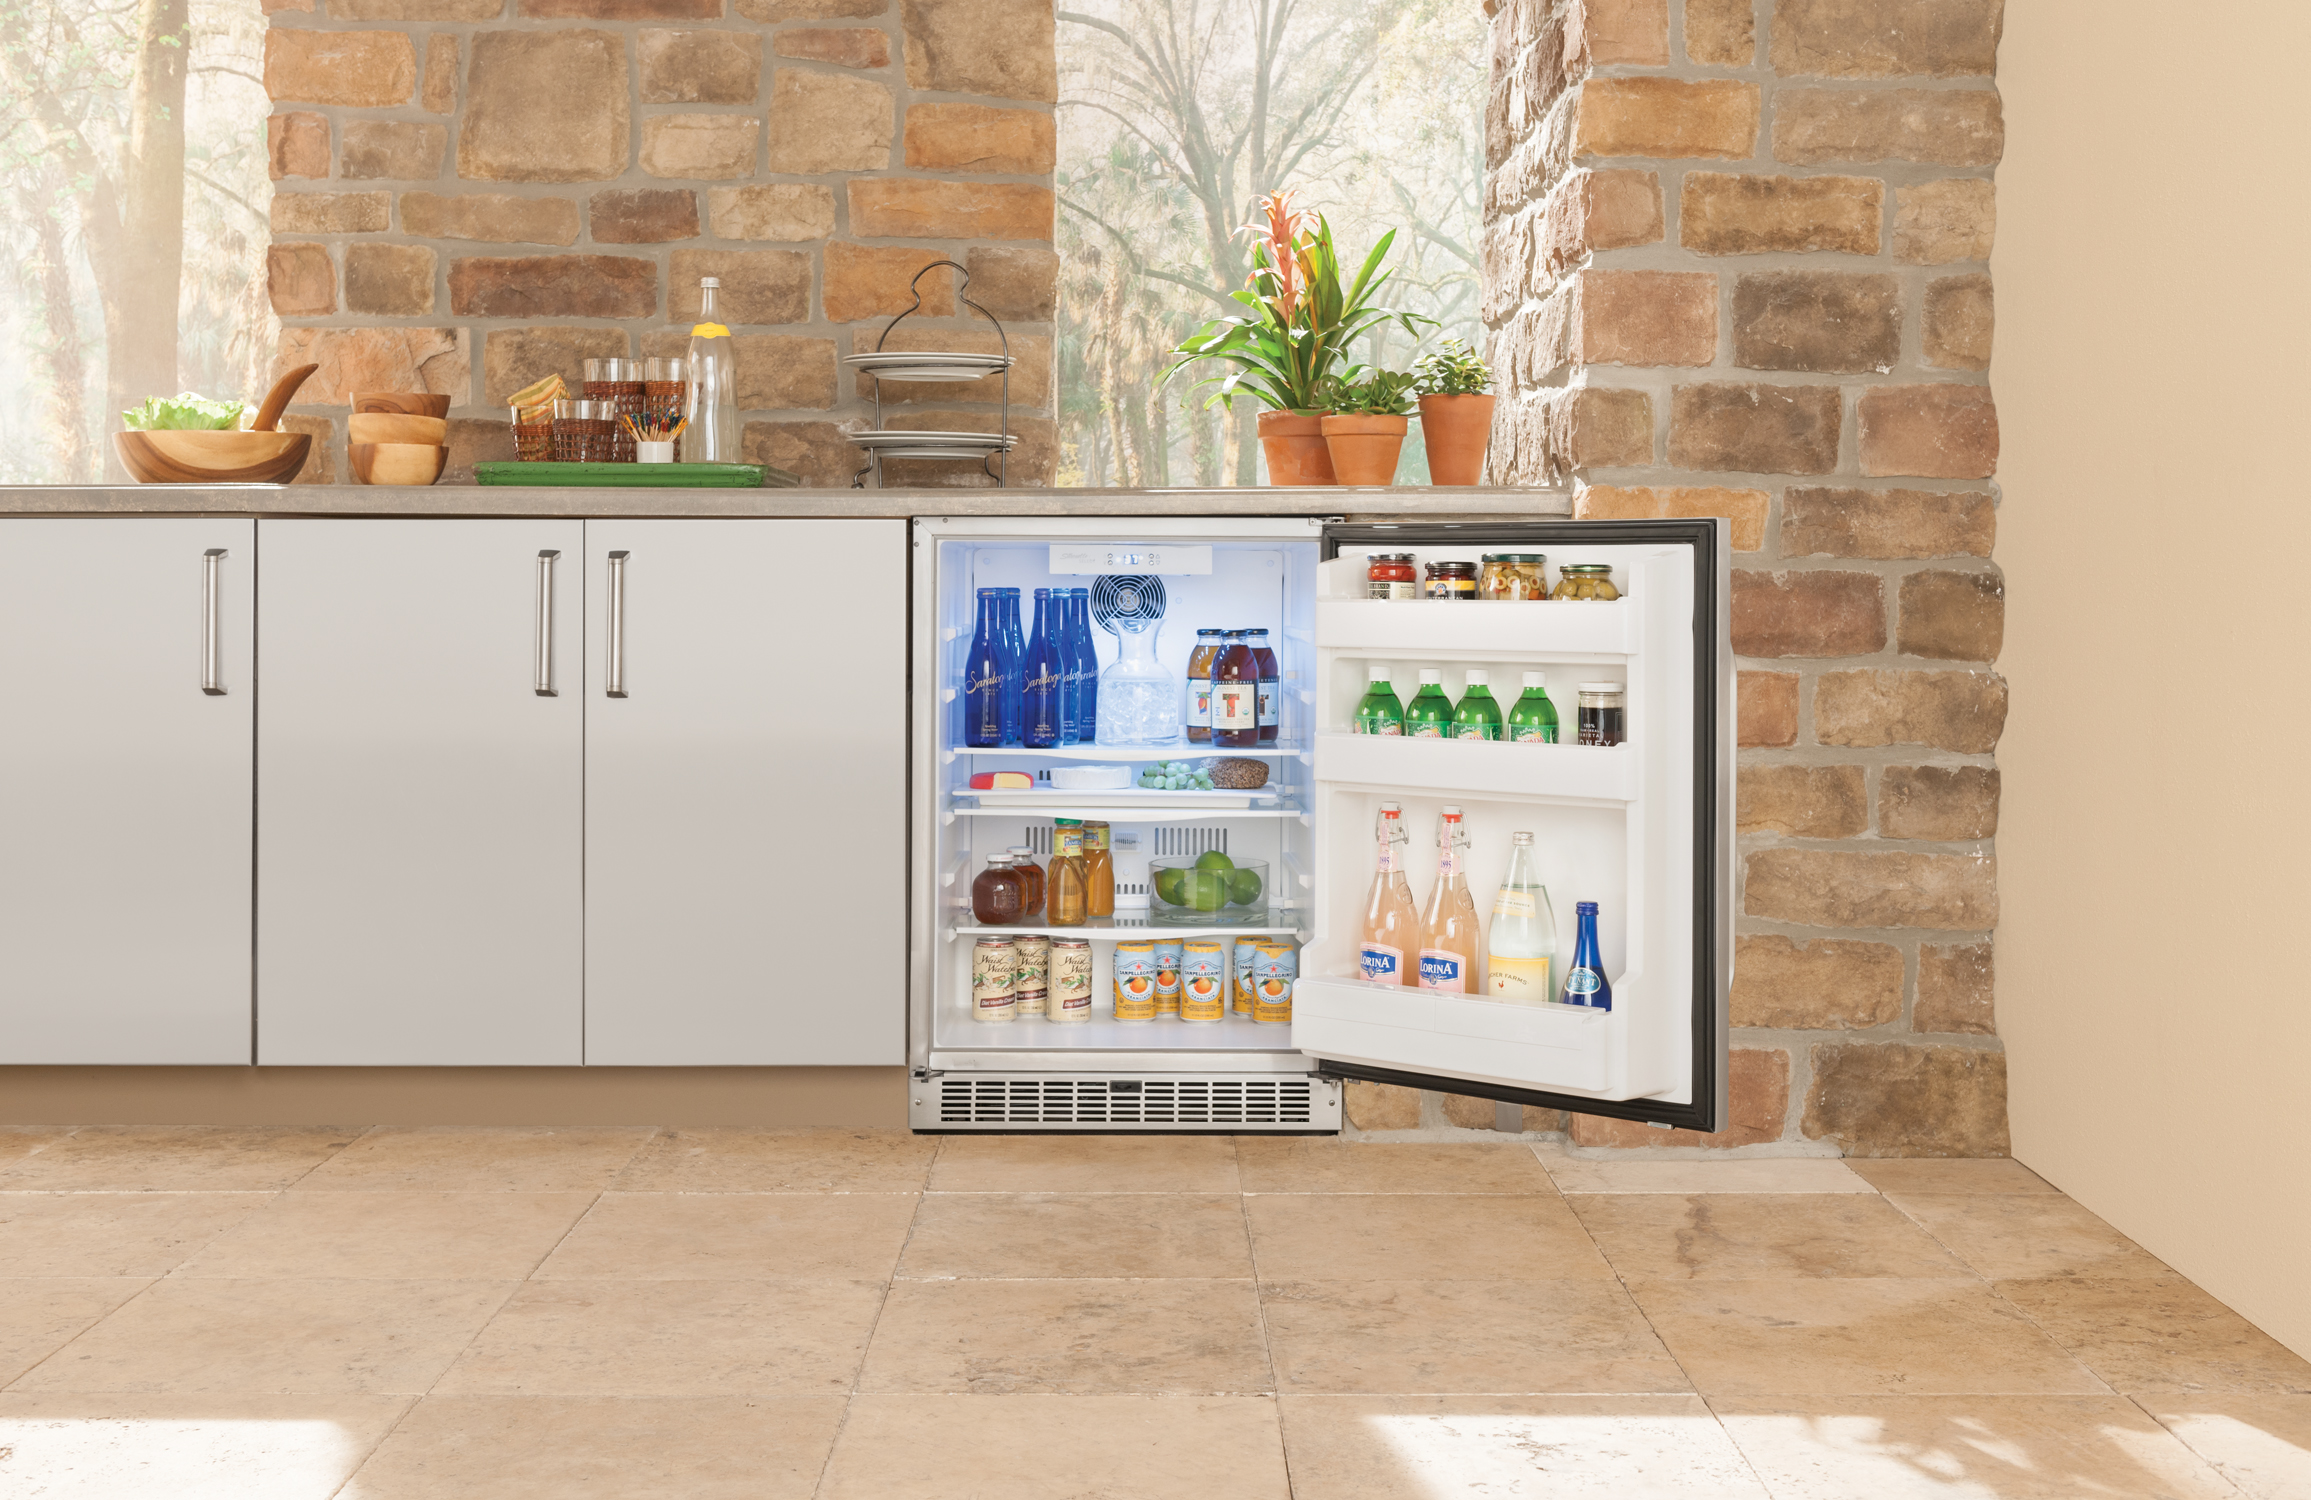 outdoor entertaining with style  u2013 win a silhouette outdoor refrigerator